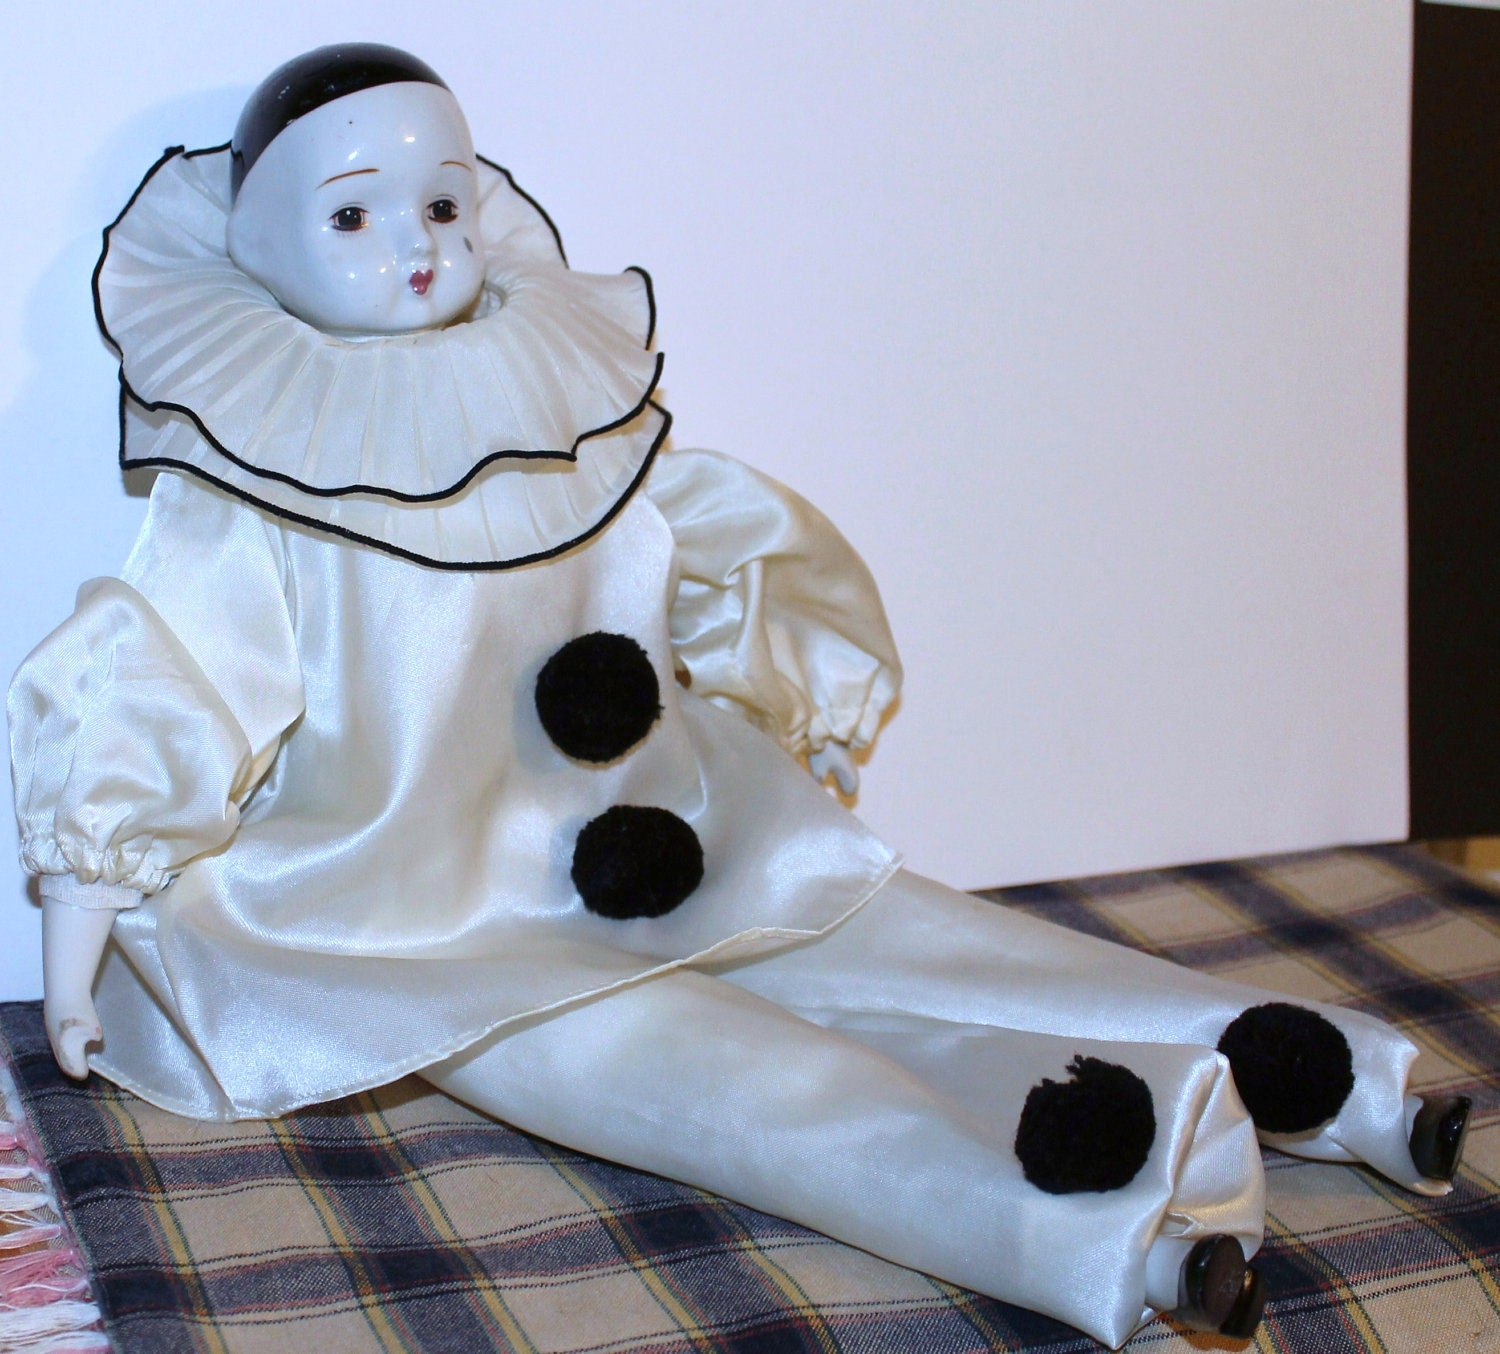 Vintage Pierrot clown doll